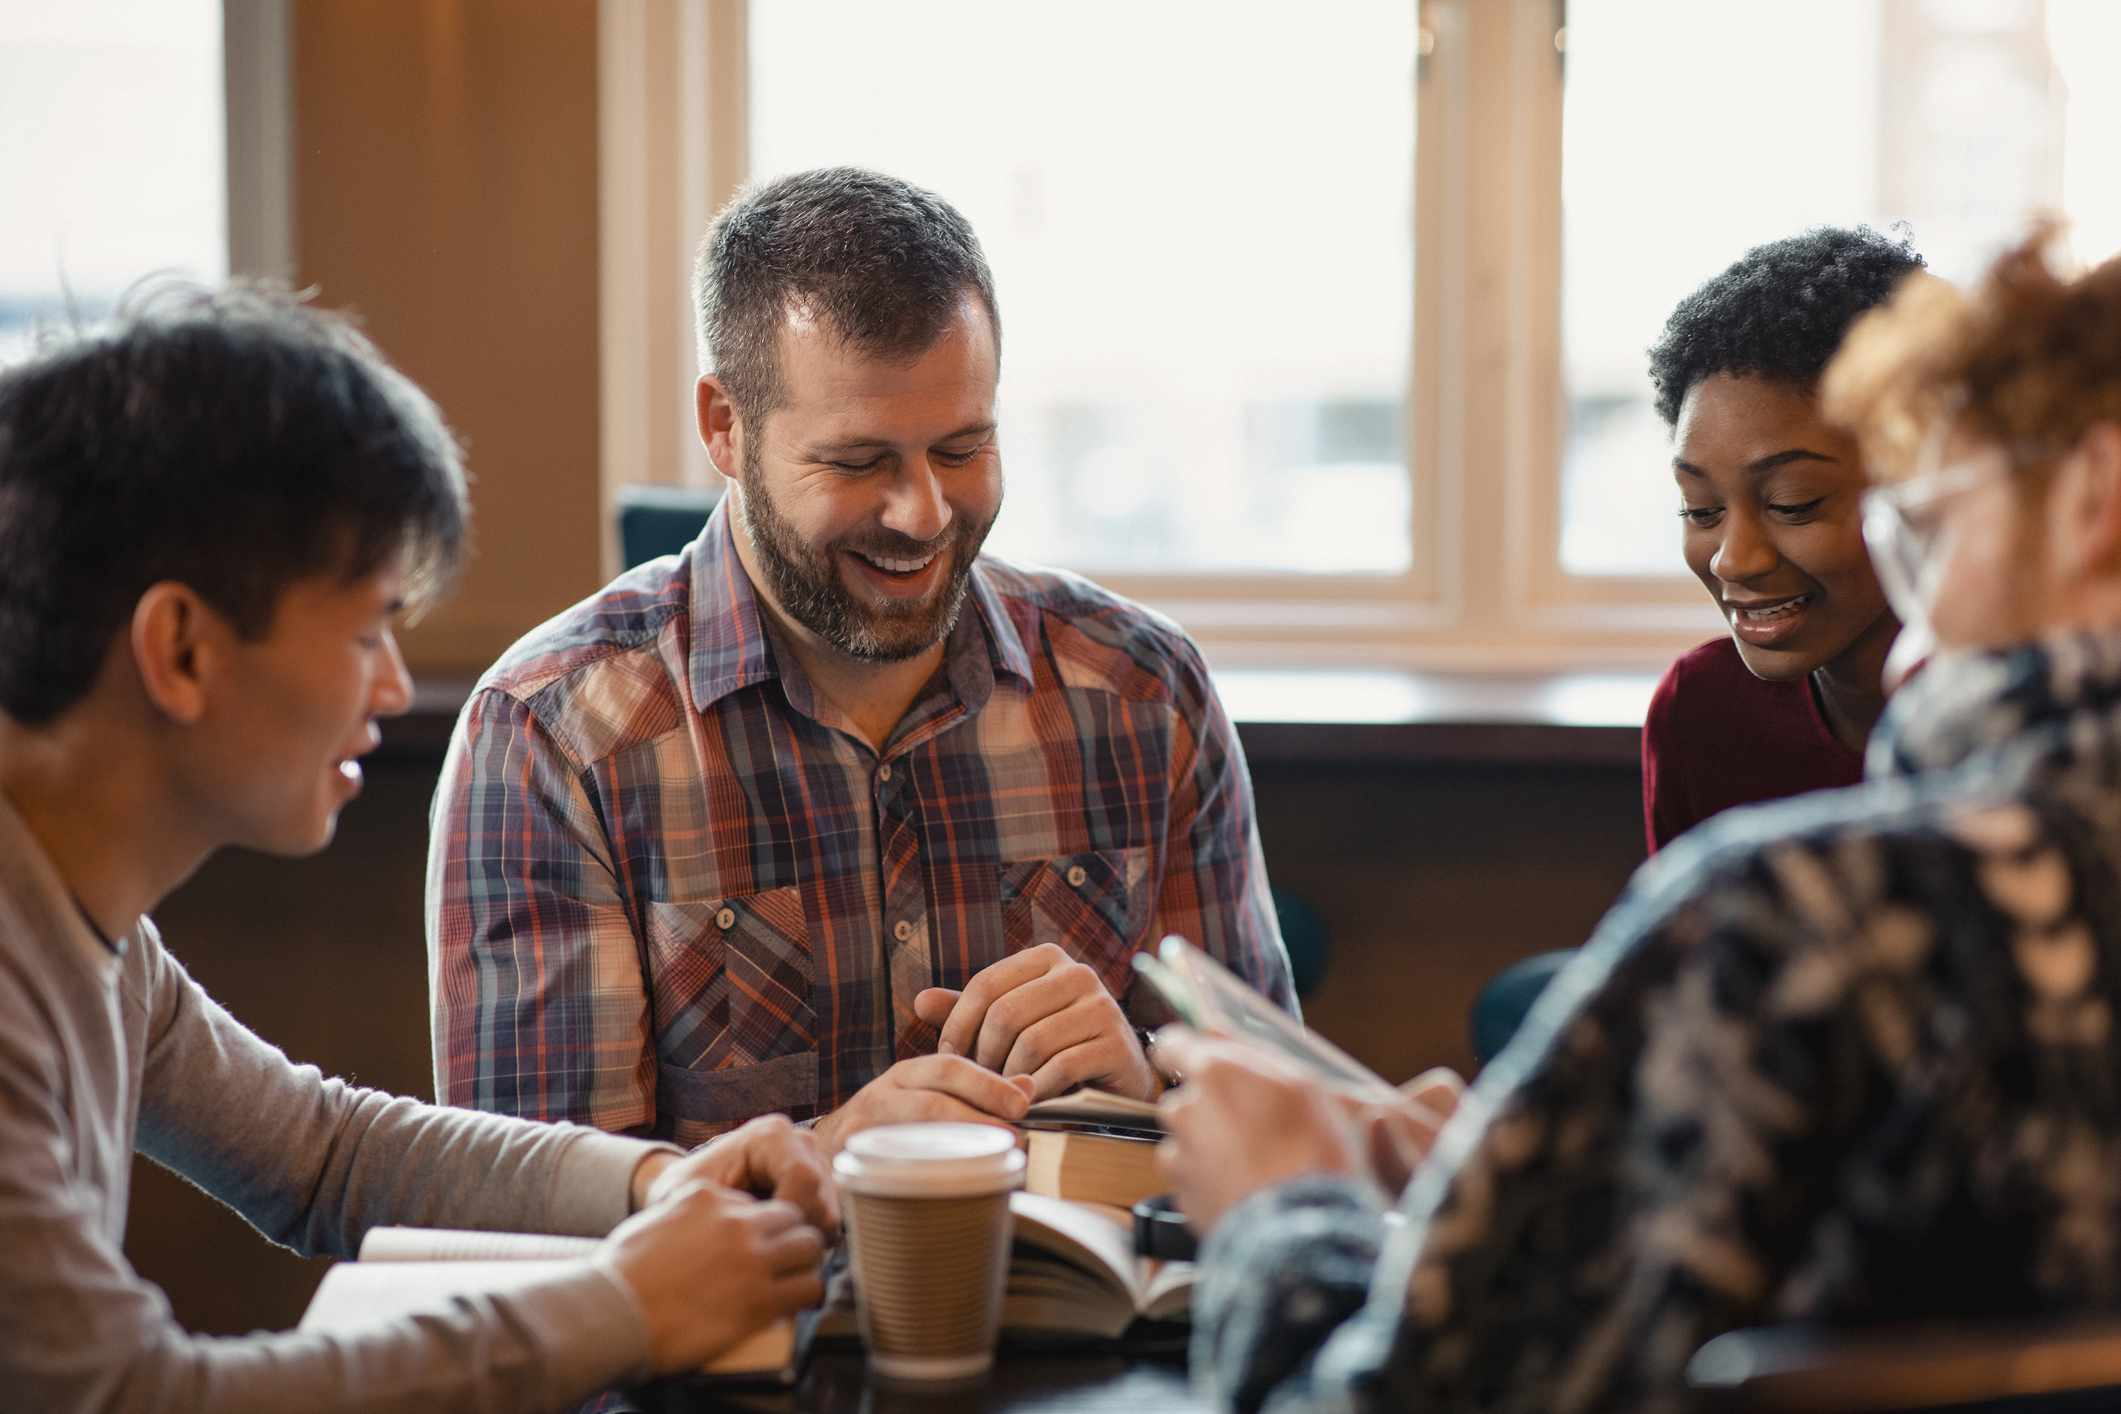 Small group discusses a book